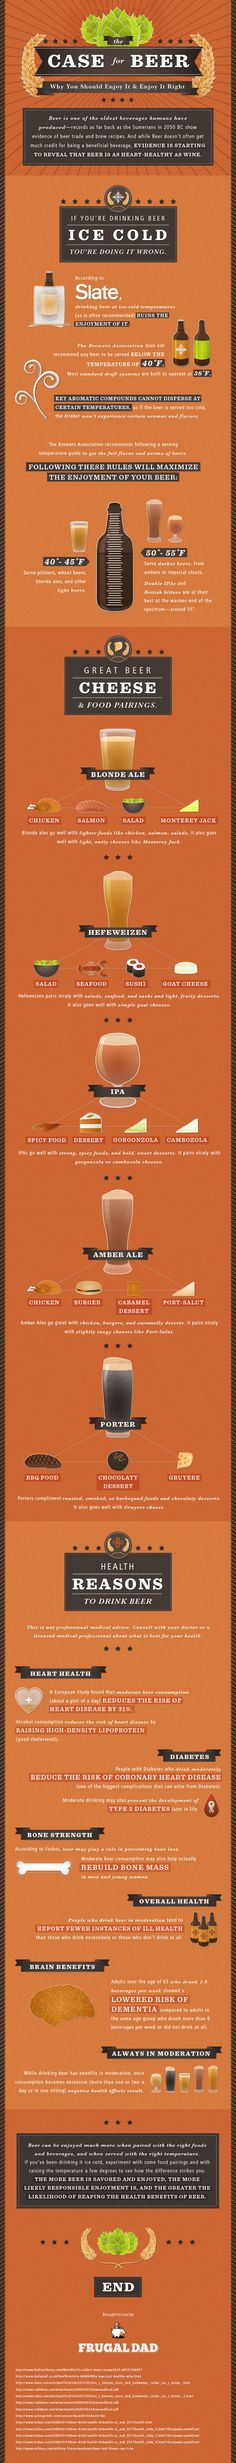 How to #pair #beers with #food - Discover more in this #infographic - http://www.finedininglovers.com/blog/food-drinks/how-to-pair-beers-with-food/